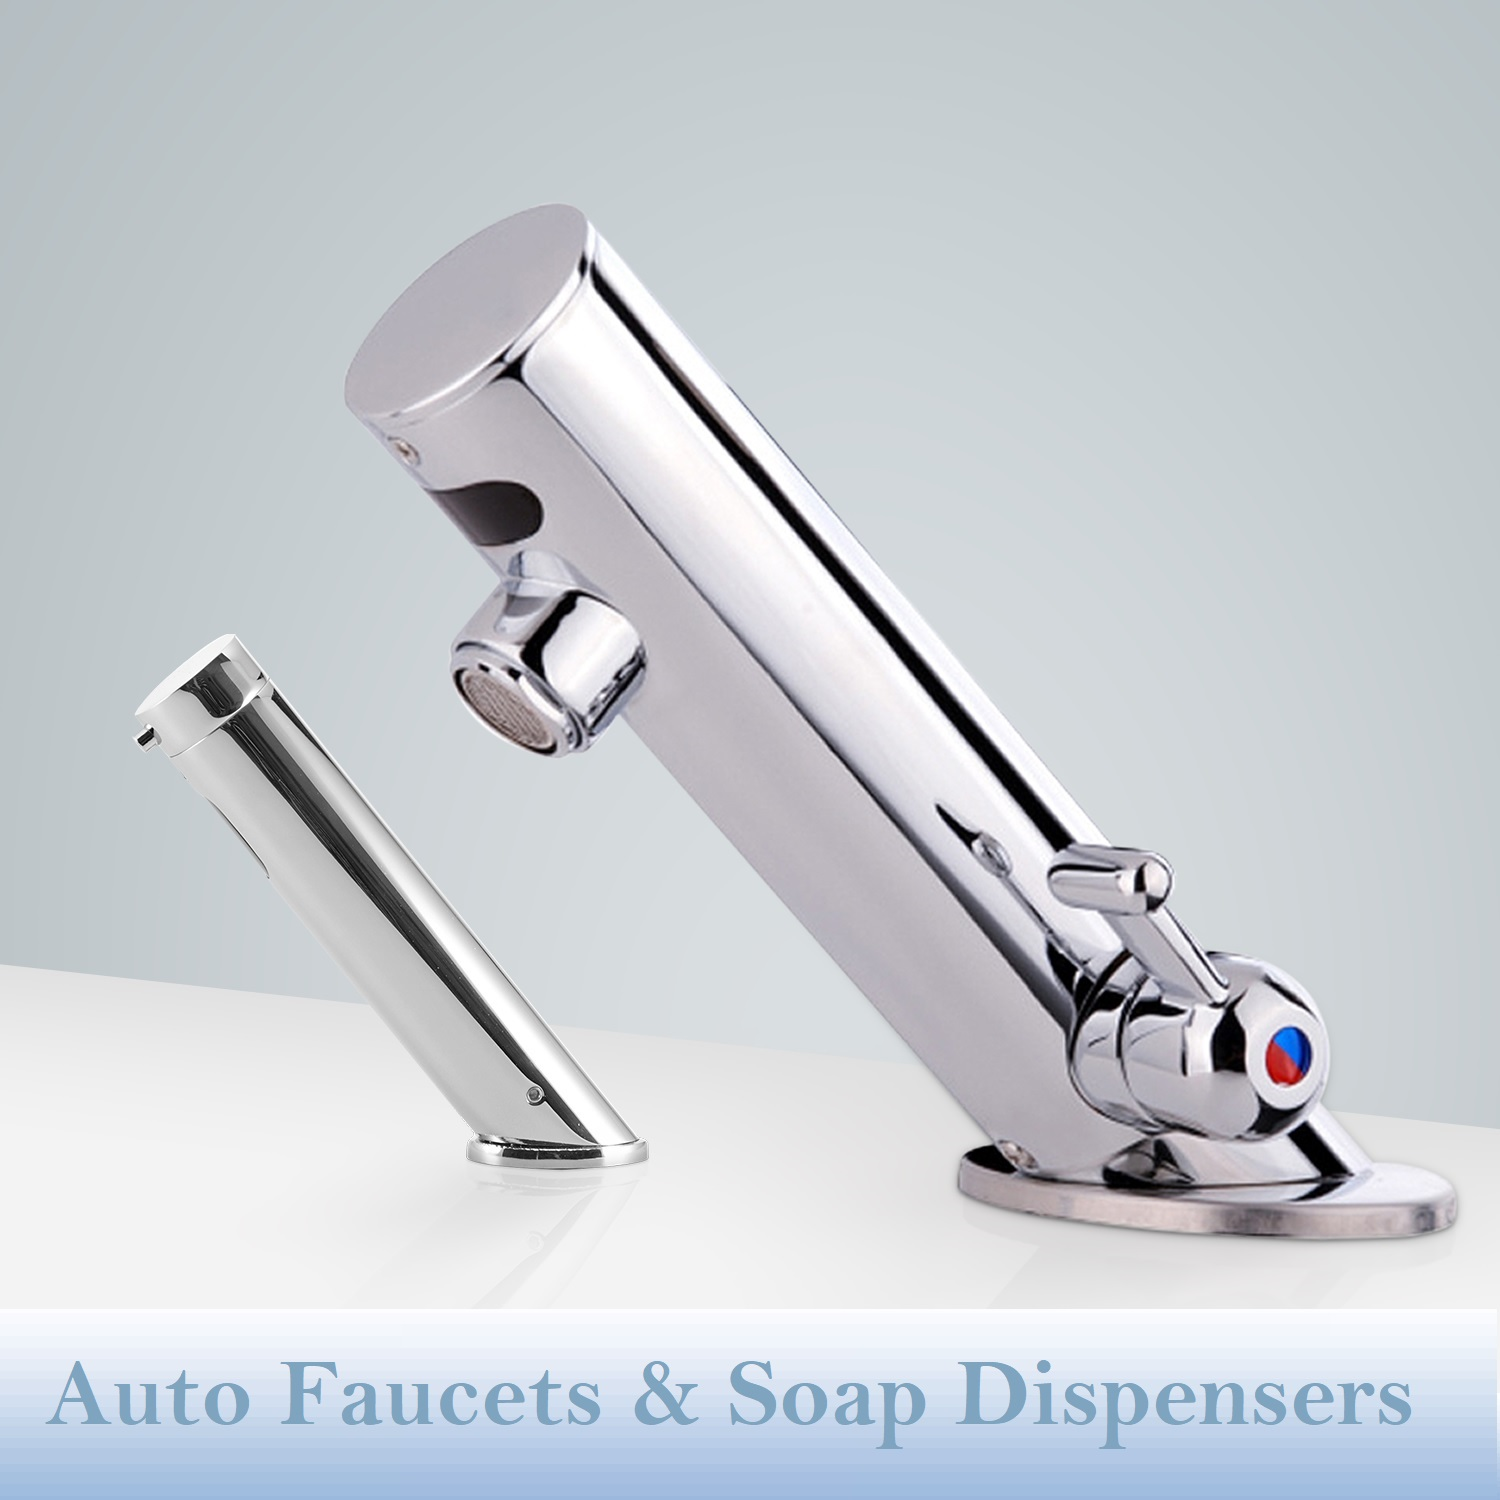 Auto Faucets & Soap Dispensers